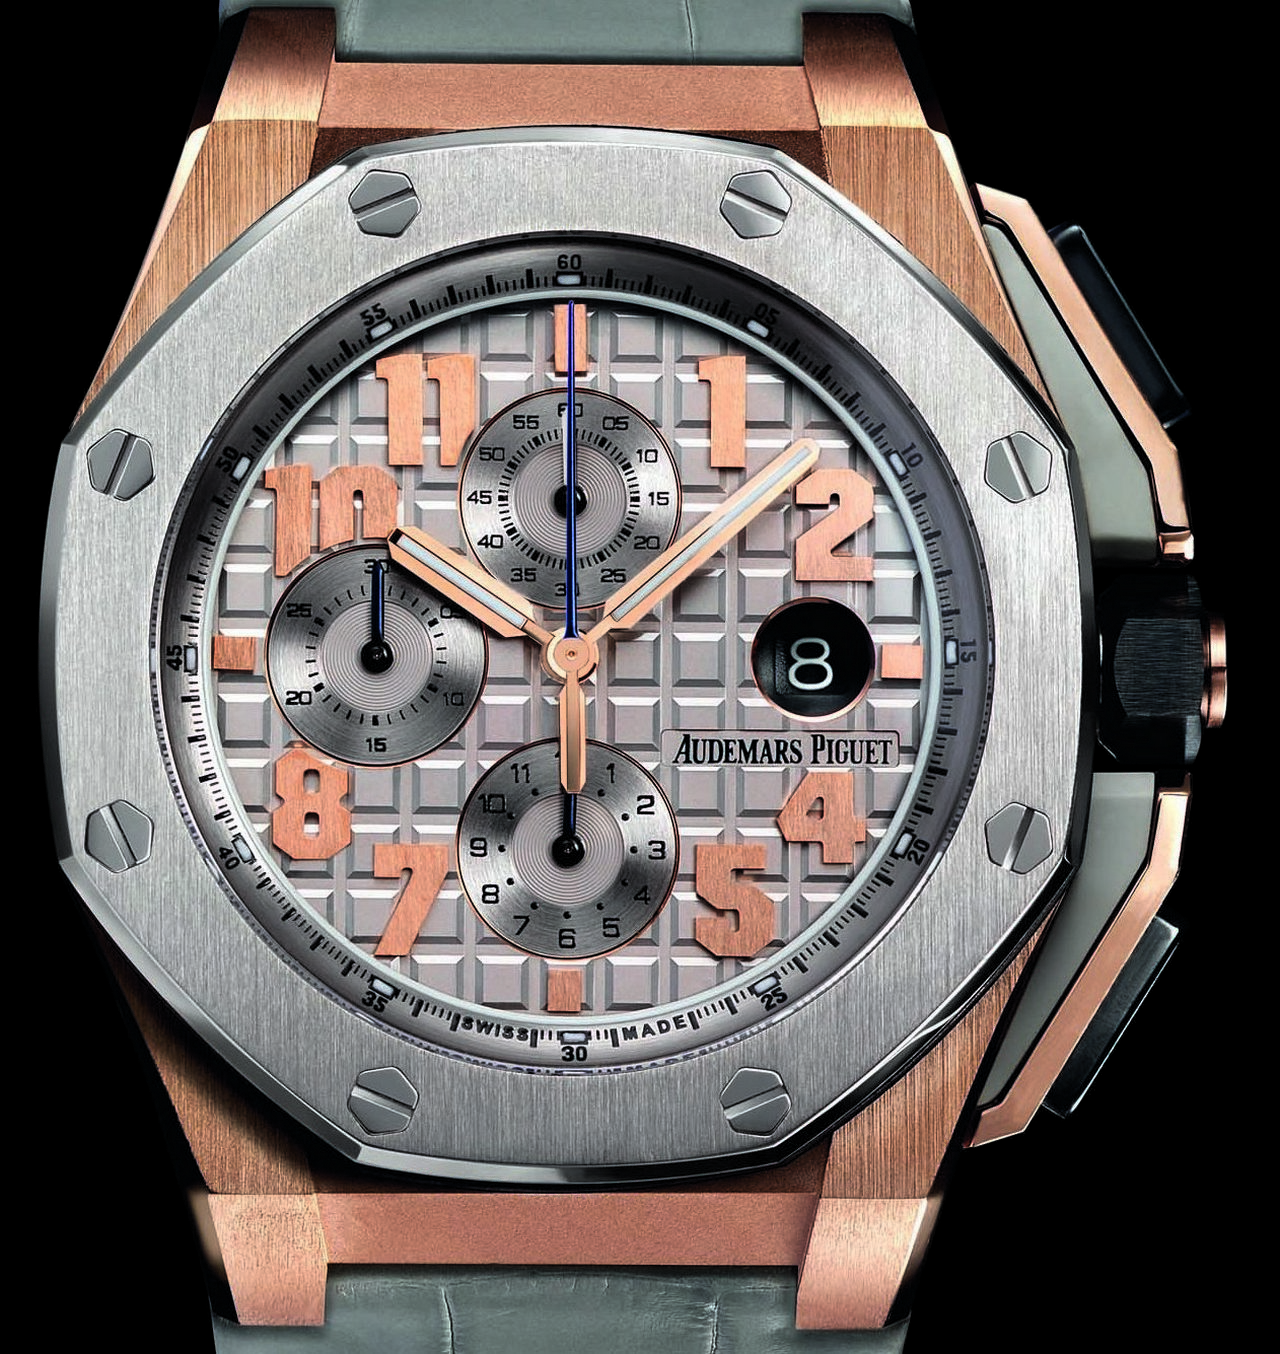 audemars-piguet-royal-oak-offshore-lebron-james-limited-edition_20-100